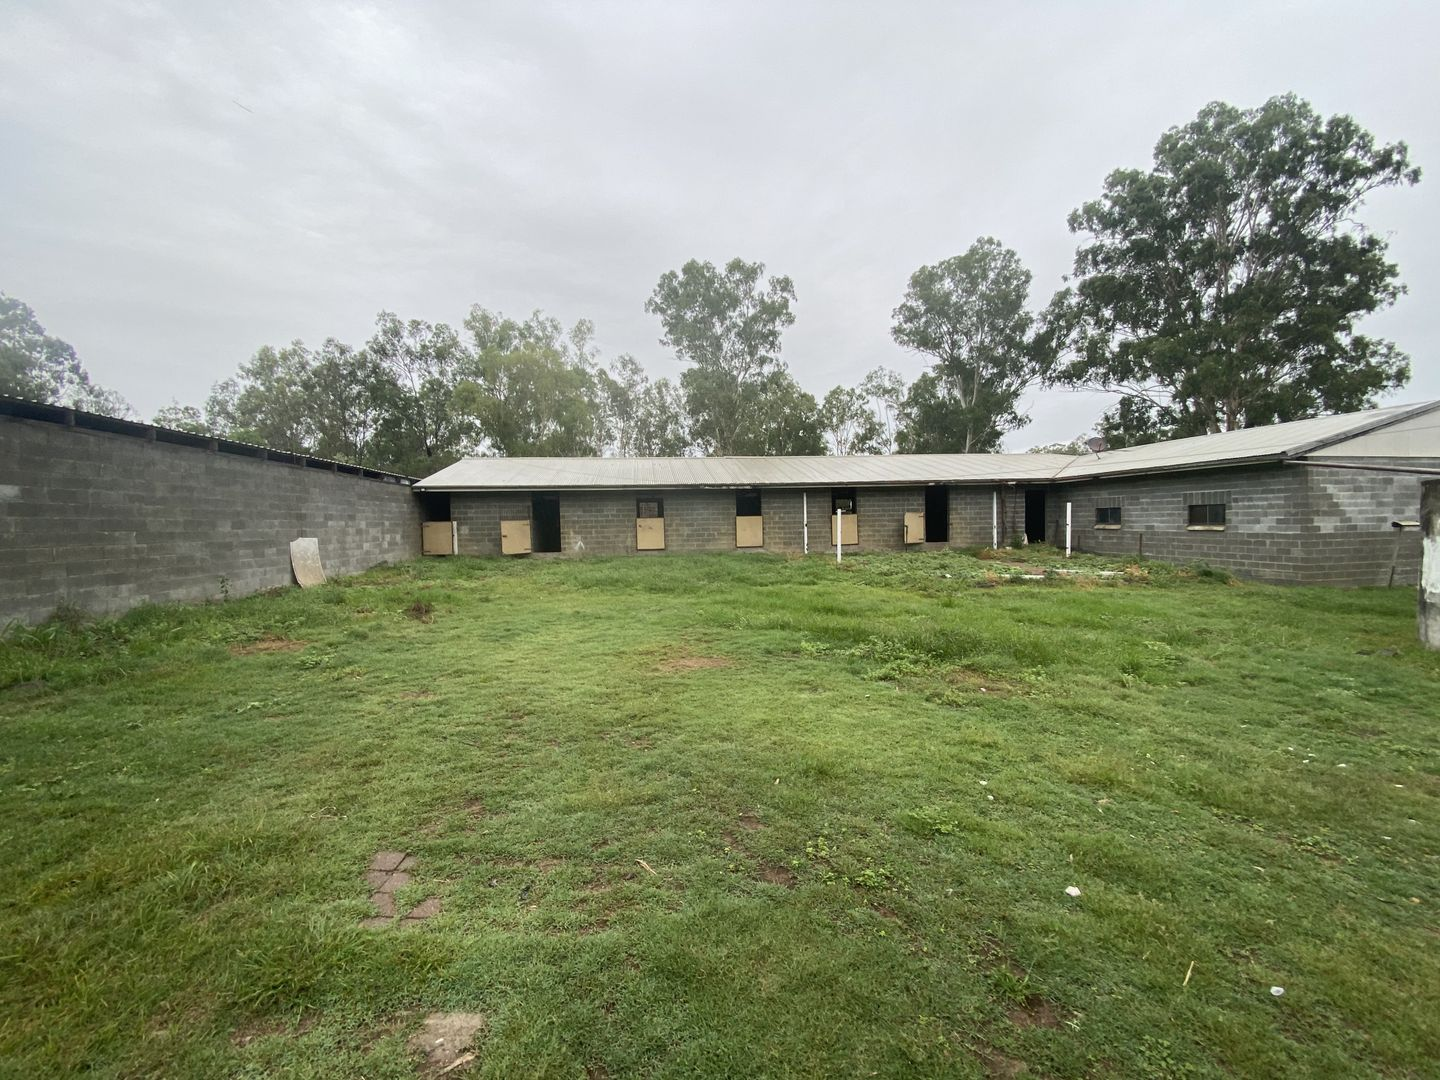 172 Pine Mountain Quarry Rd, Pine Mountain QLD 4306, Image 2